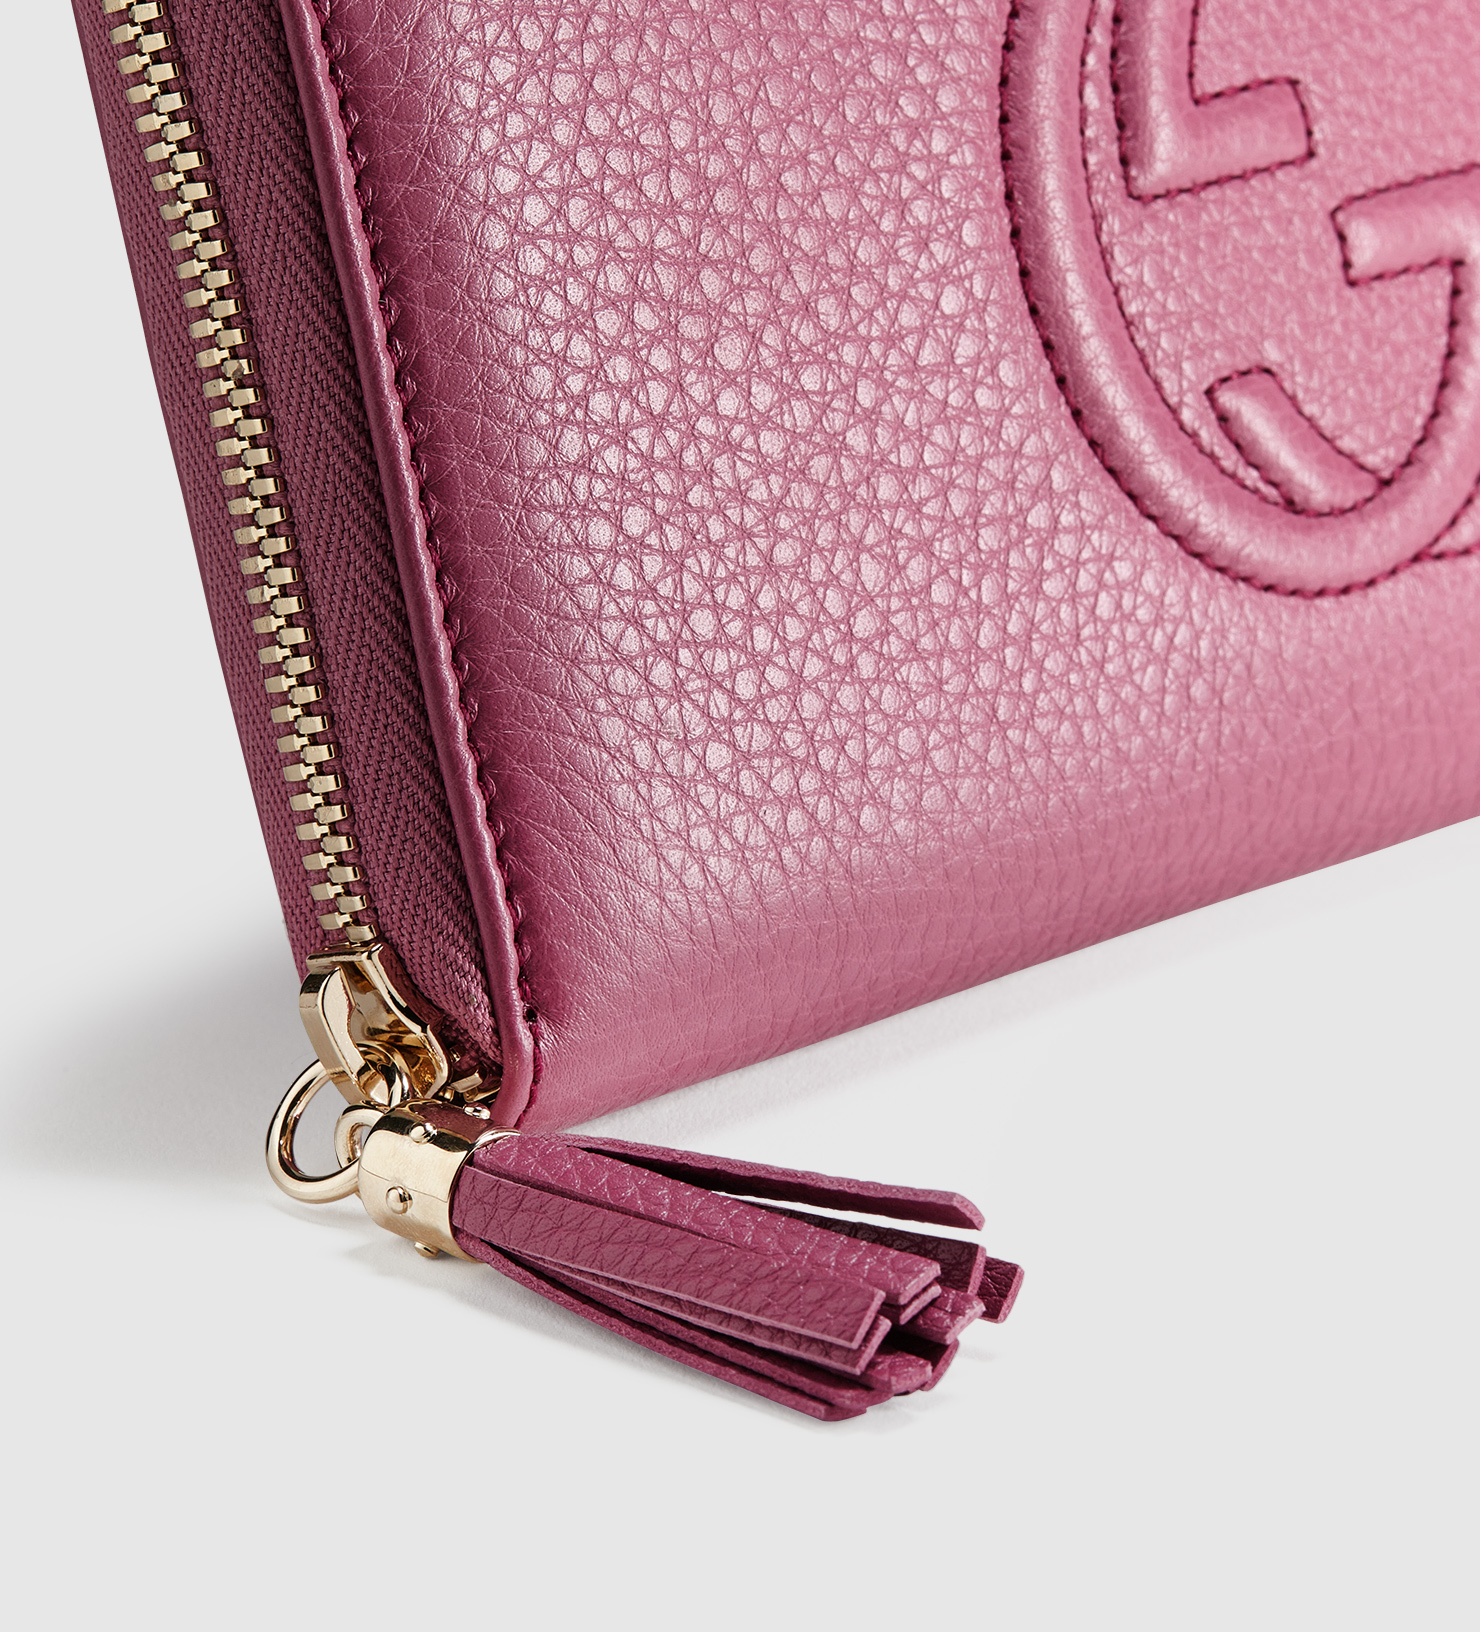 3e48aeec041 Gucci Soho Leather Zip Around Wallet in Pink - Lyst